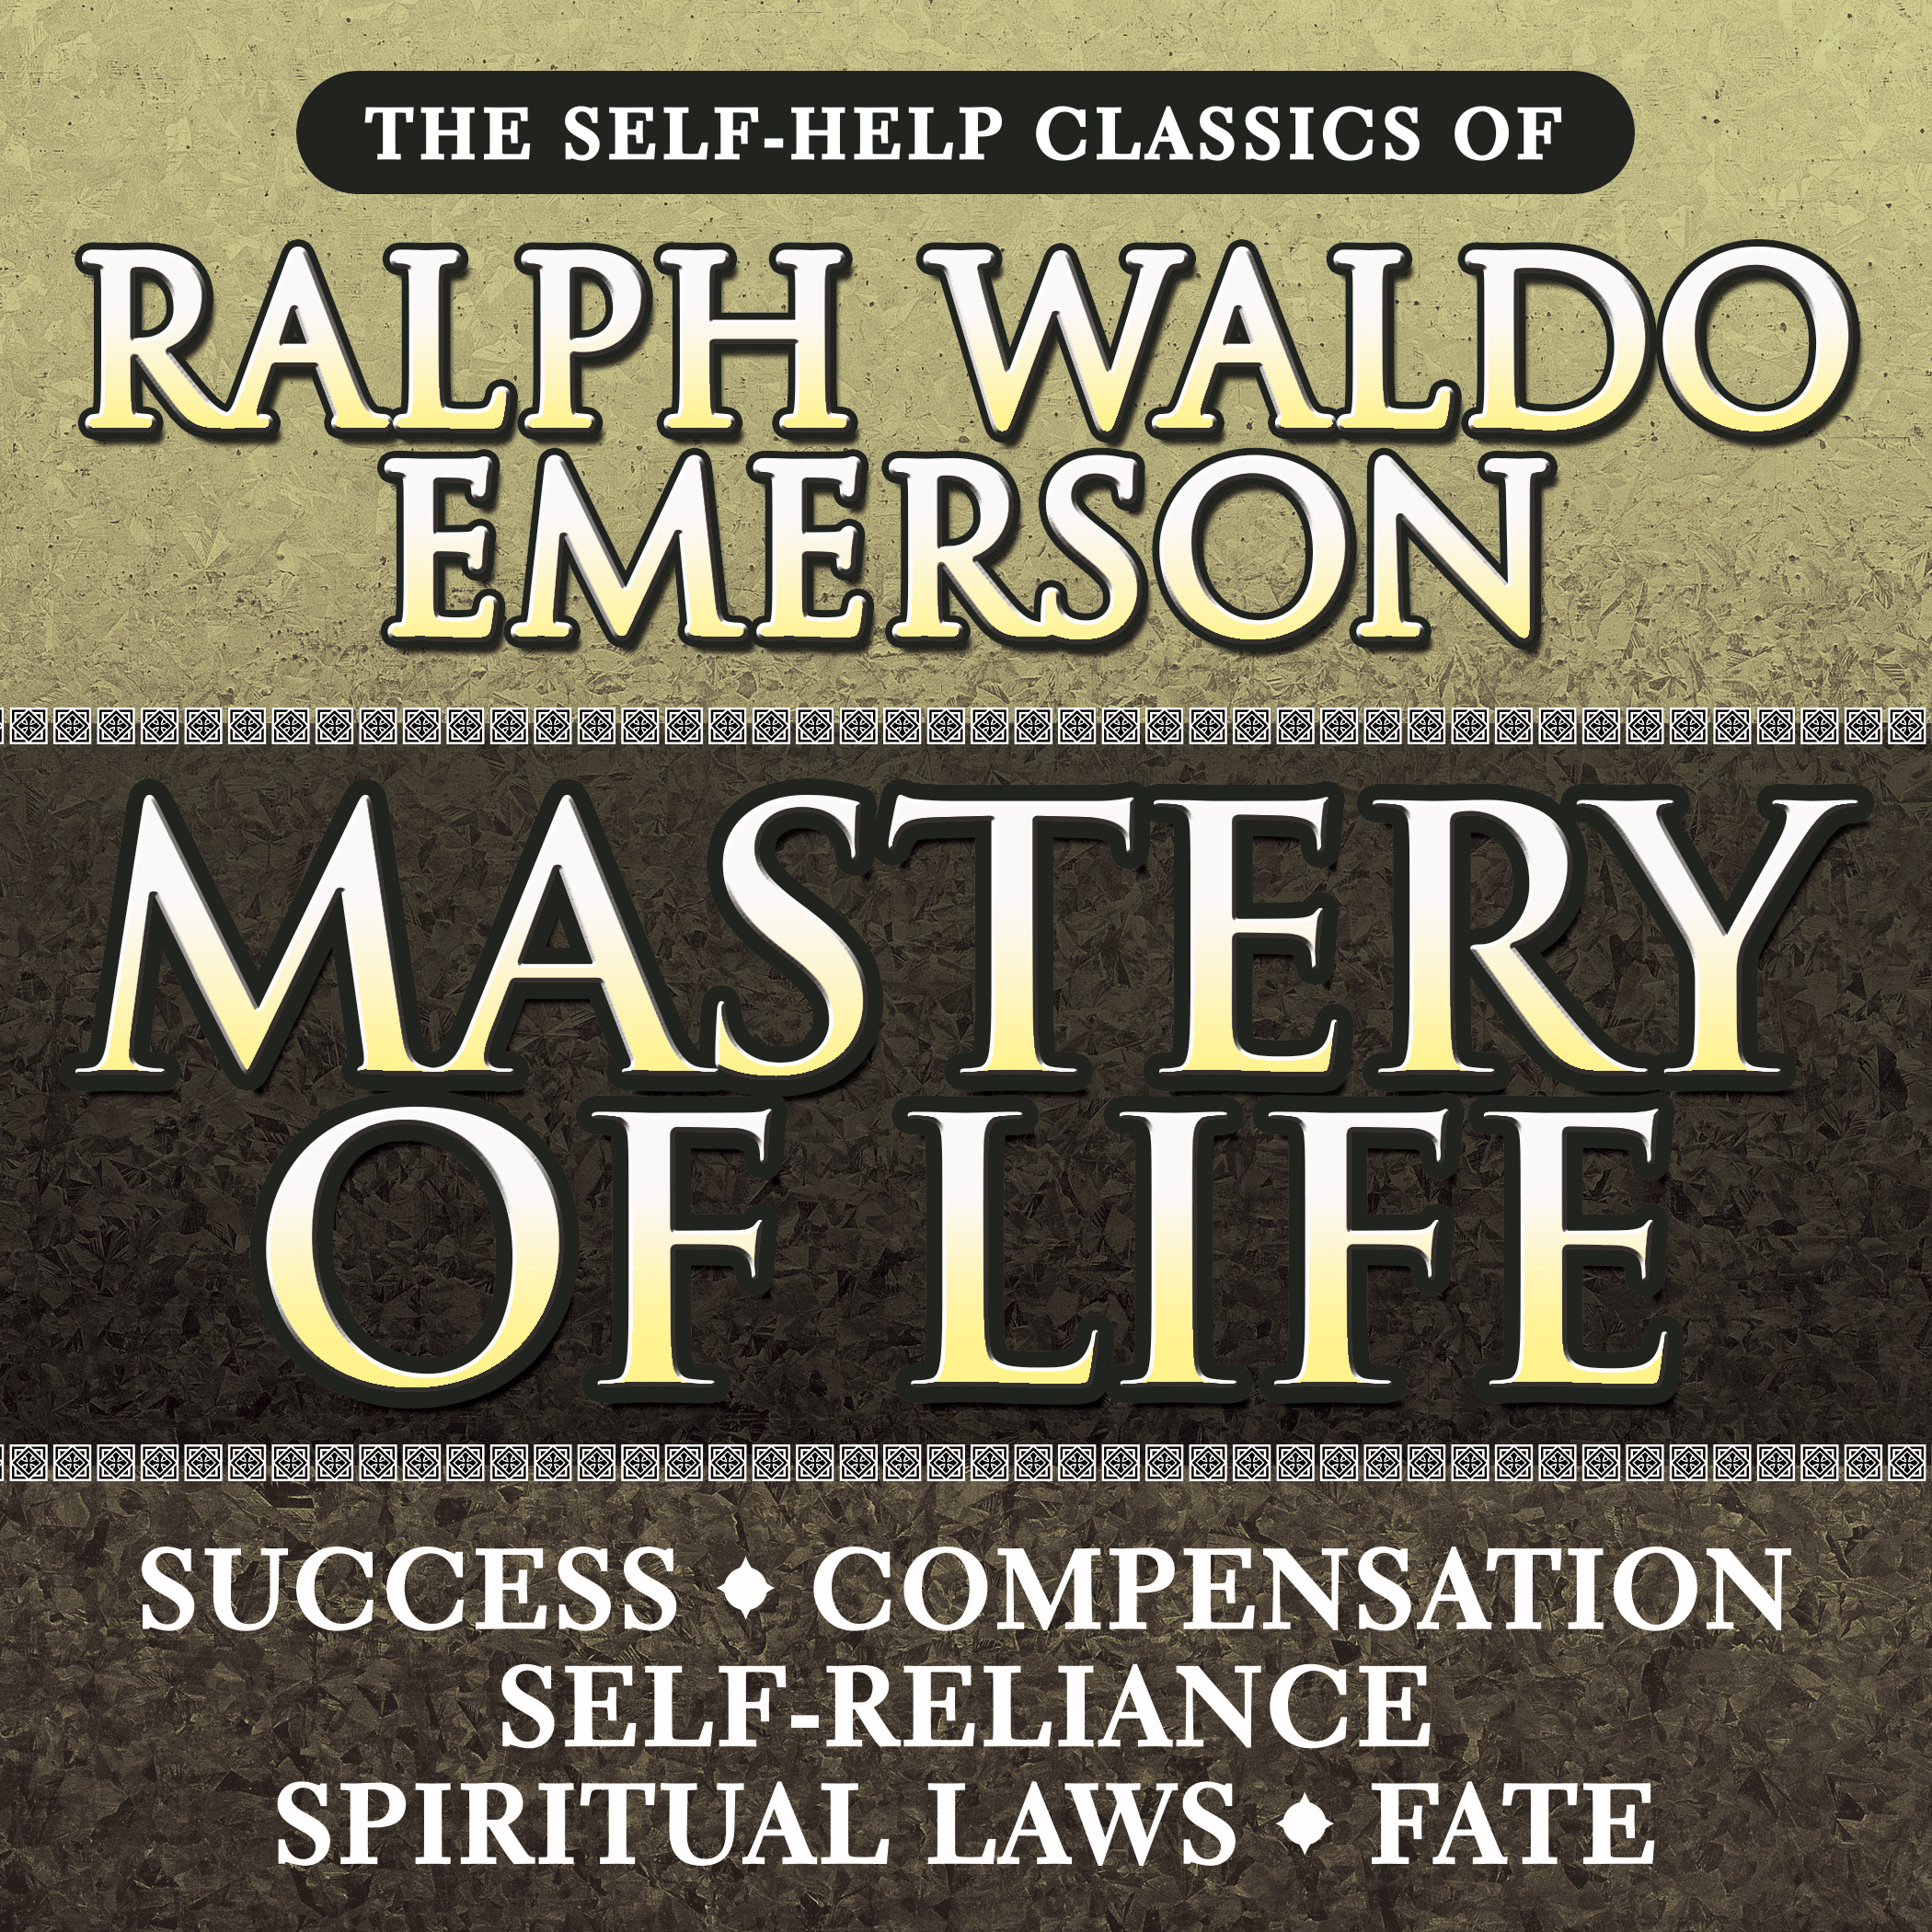 Printable Mastery of Life: The Self-Help Classics of Ralph Waldo Emerson Audiobook Cover Art